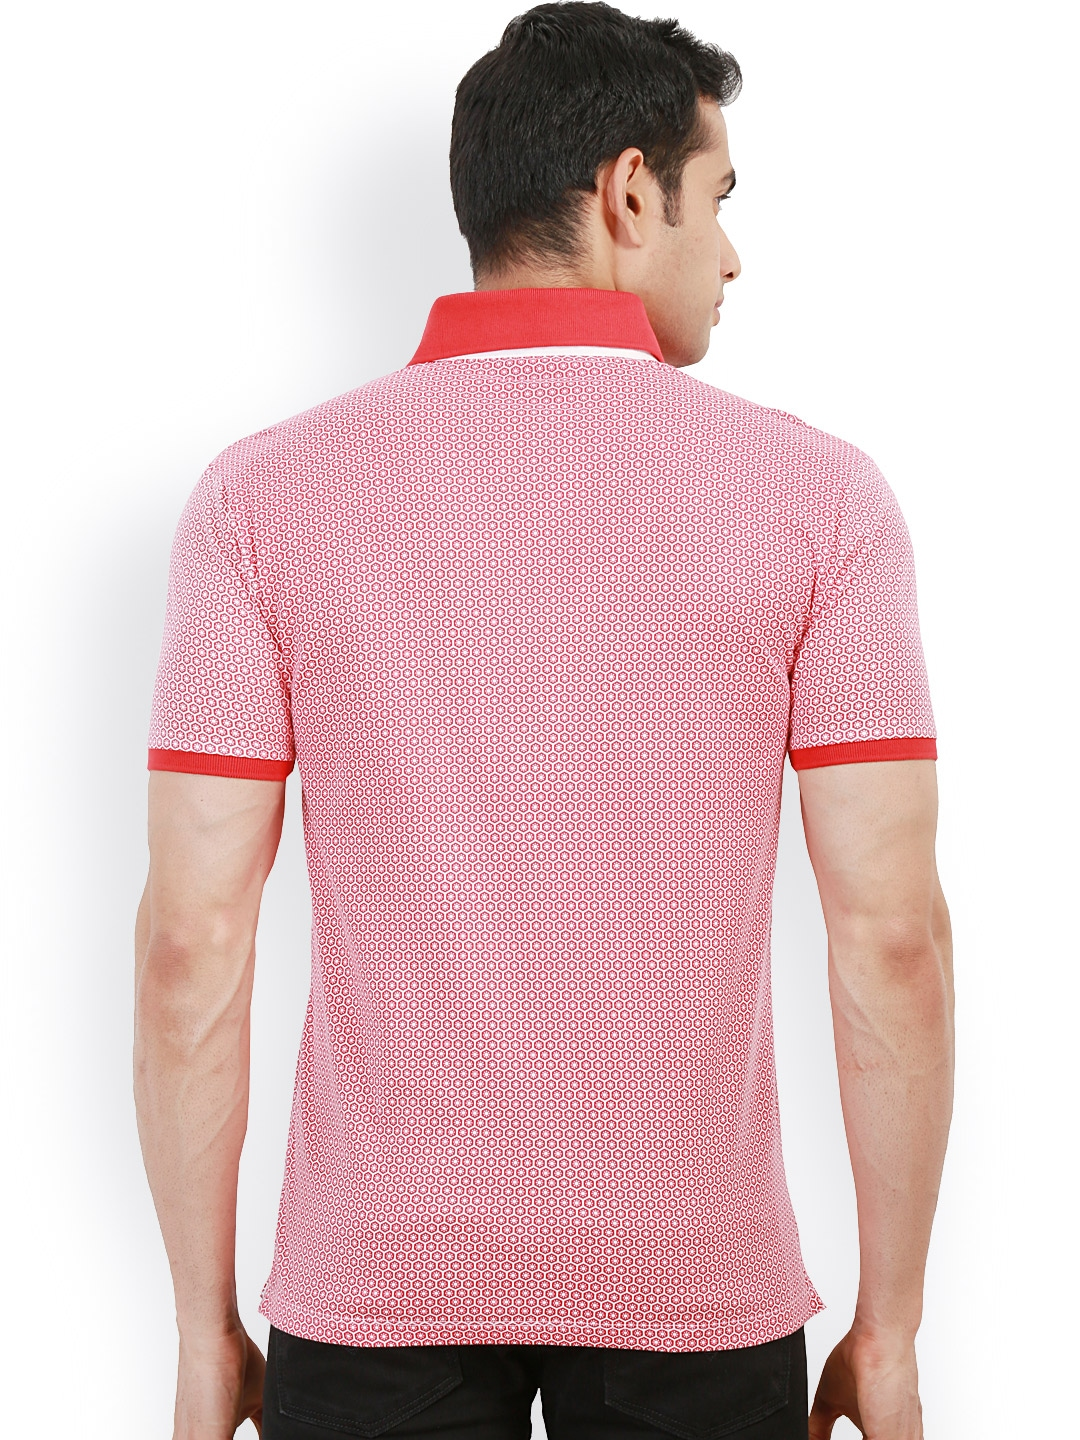 Myntra design classics red white printed slim fit polo t for Myntra t shirt design